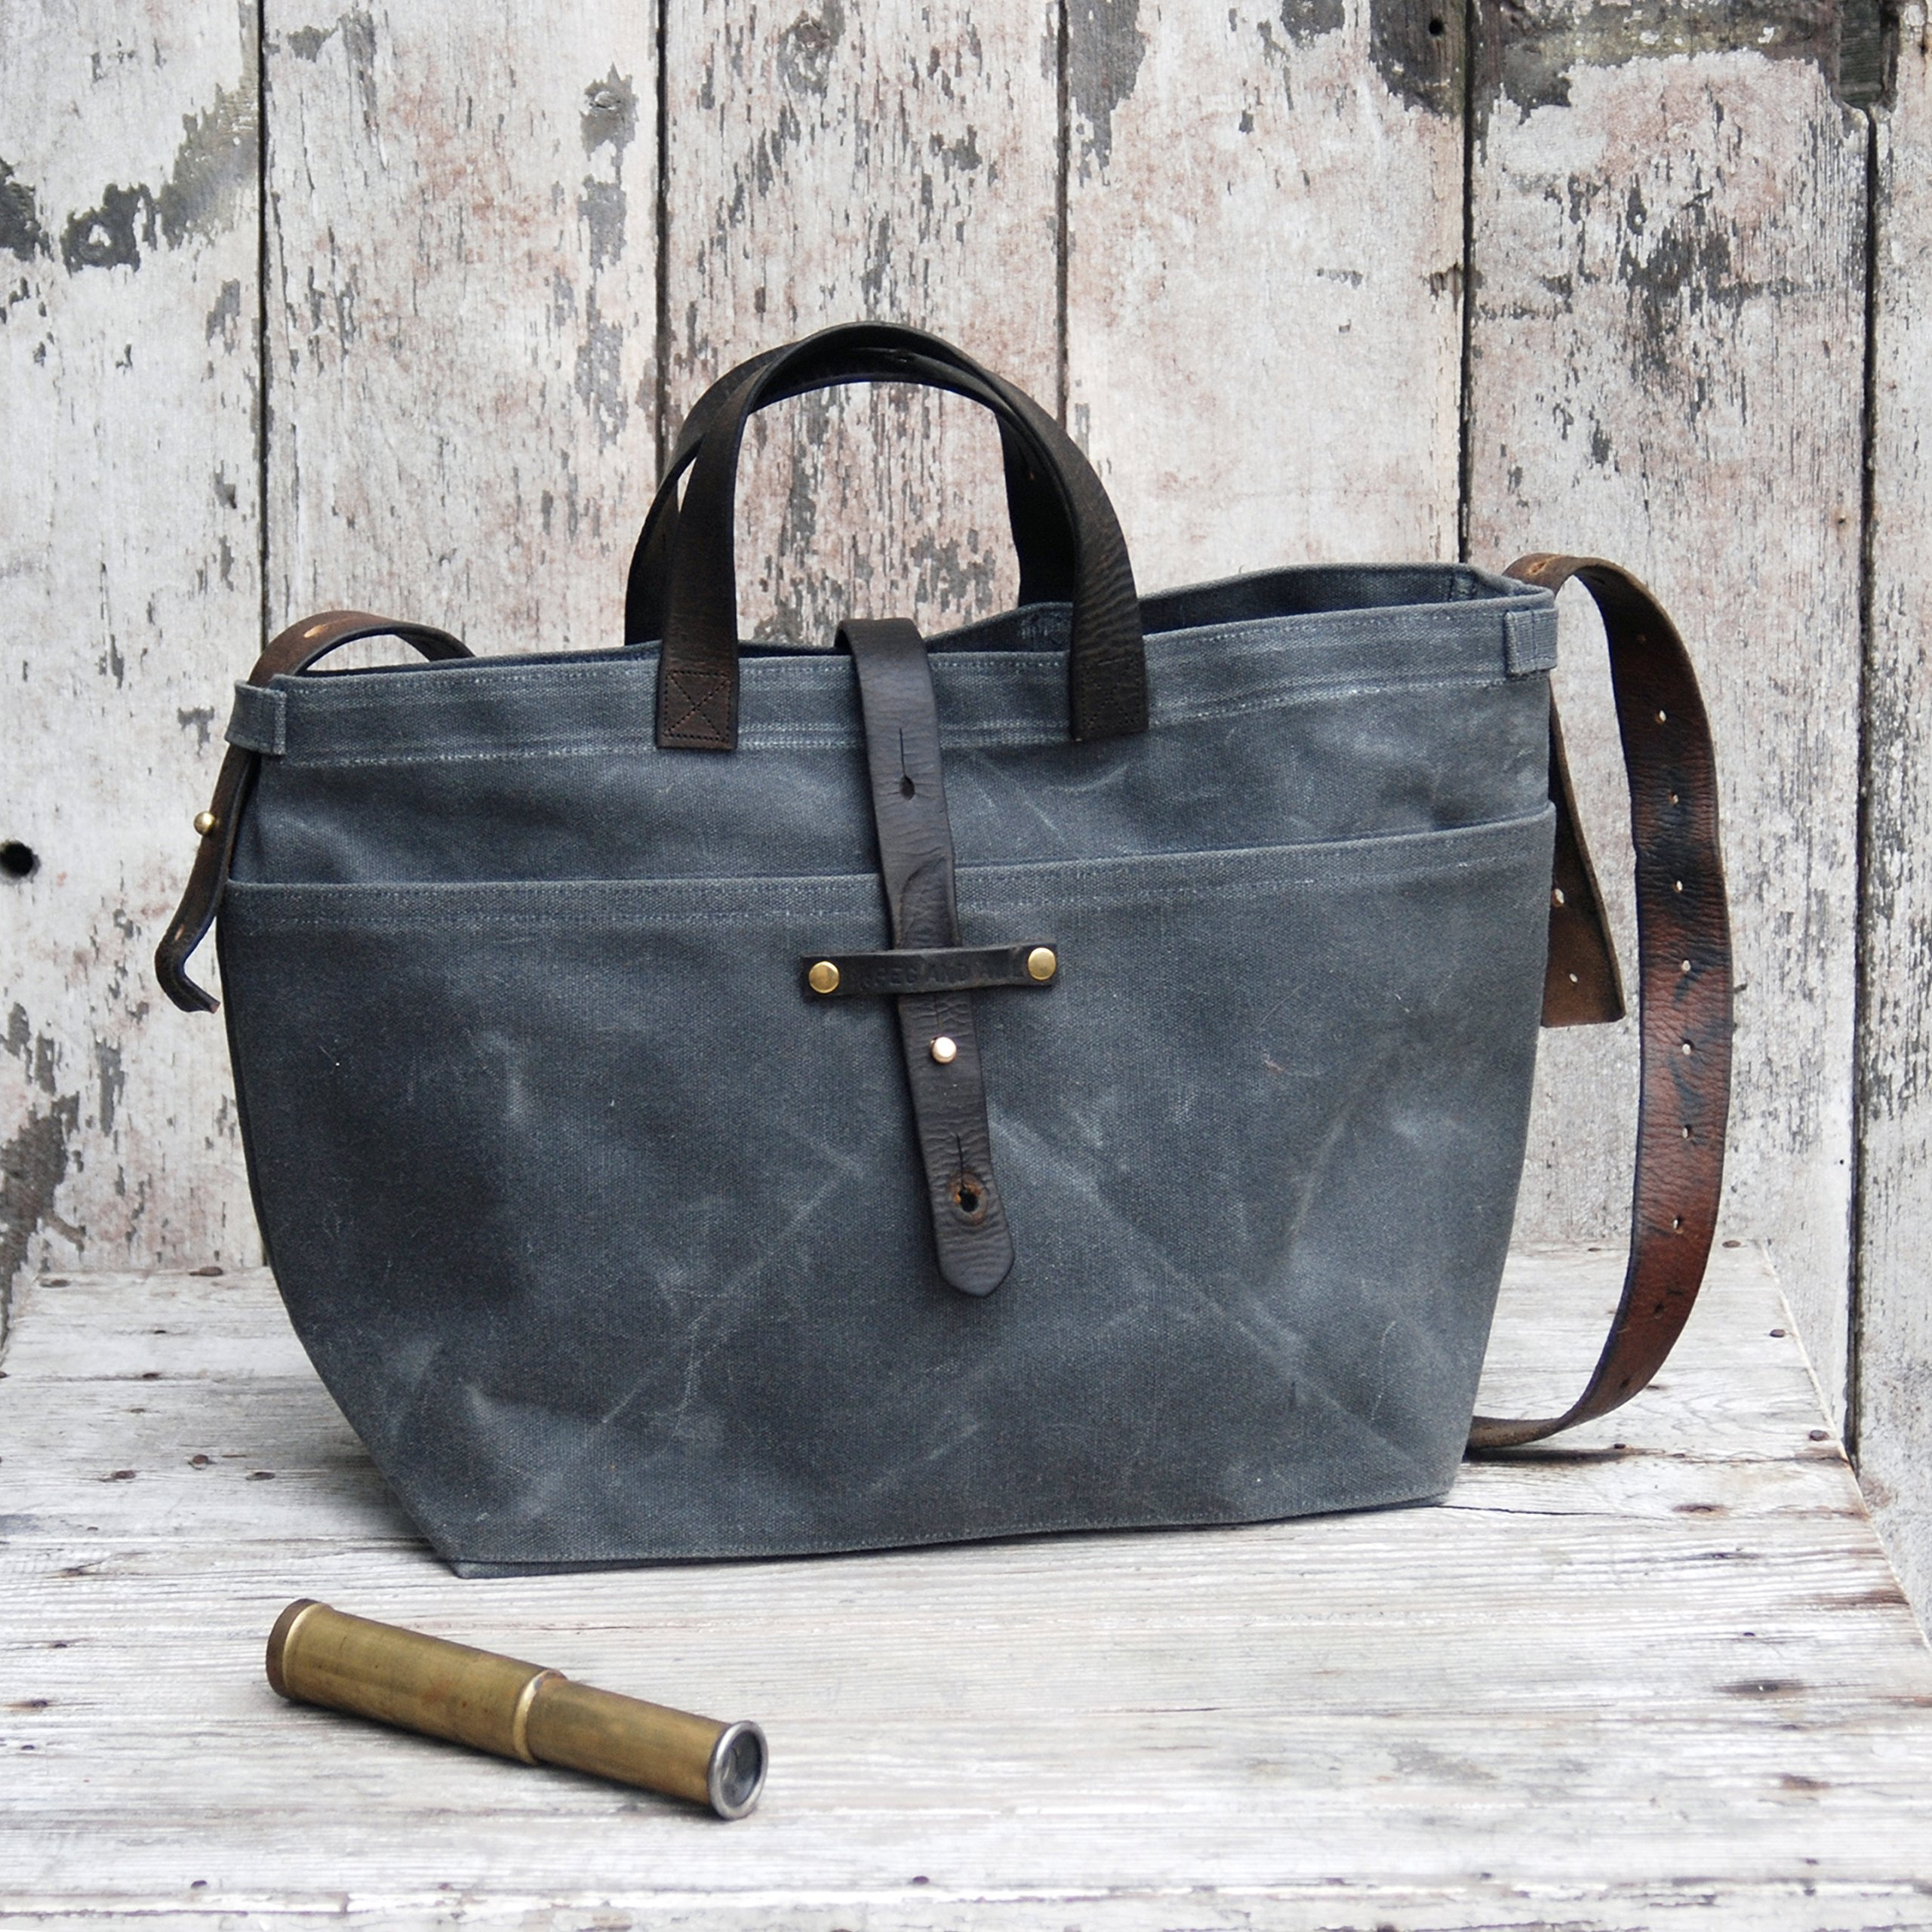 Waxed Canvas Tote in Slate with Zipper